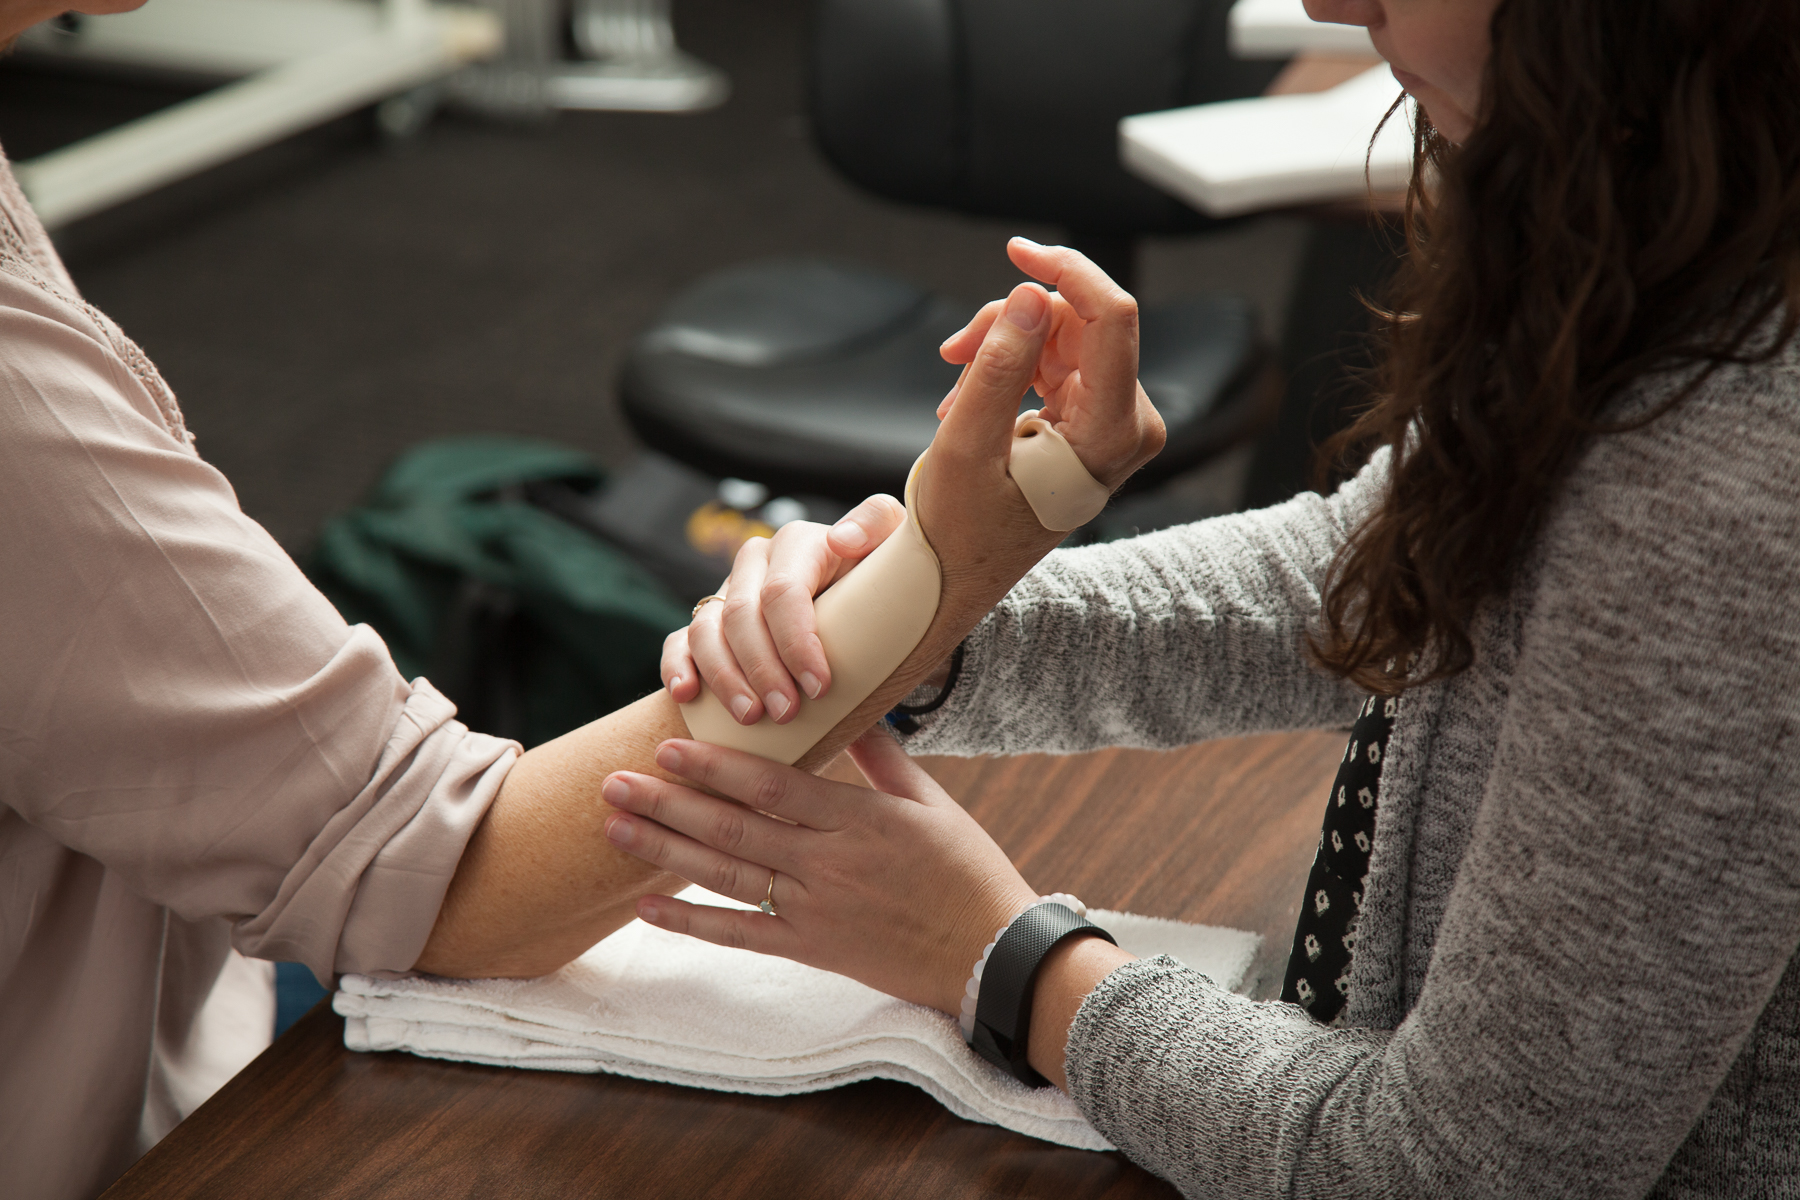 Our specialized staff are Physical or Occupational therapists with advanced certification in hand therapy and ergonomics.